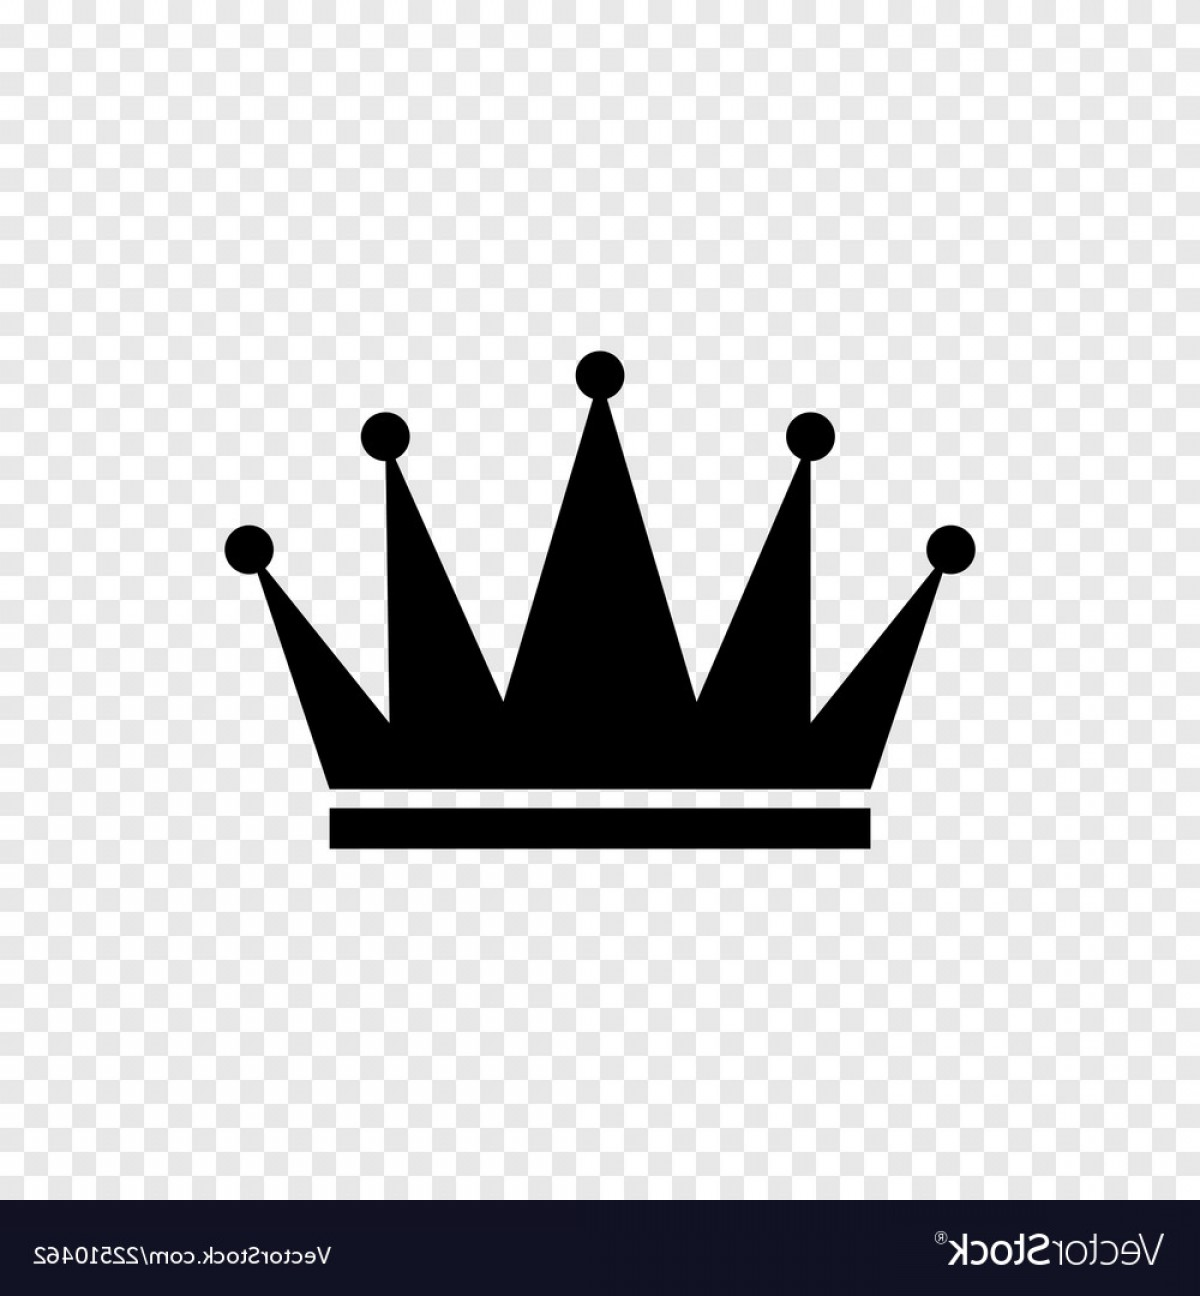 Transparent Queen Crown Vector: Black Crown Icon On Transparent Background Vector